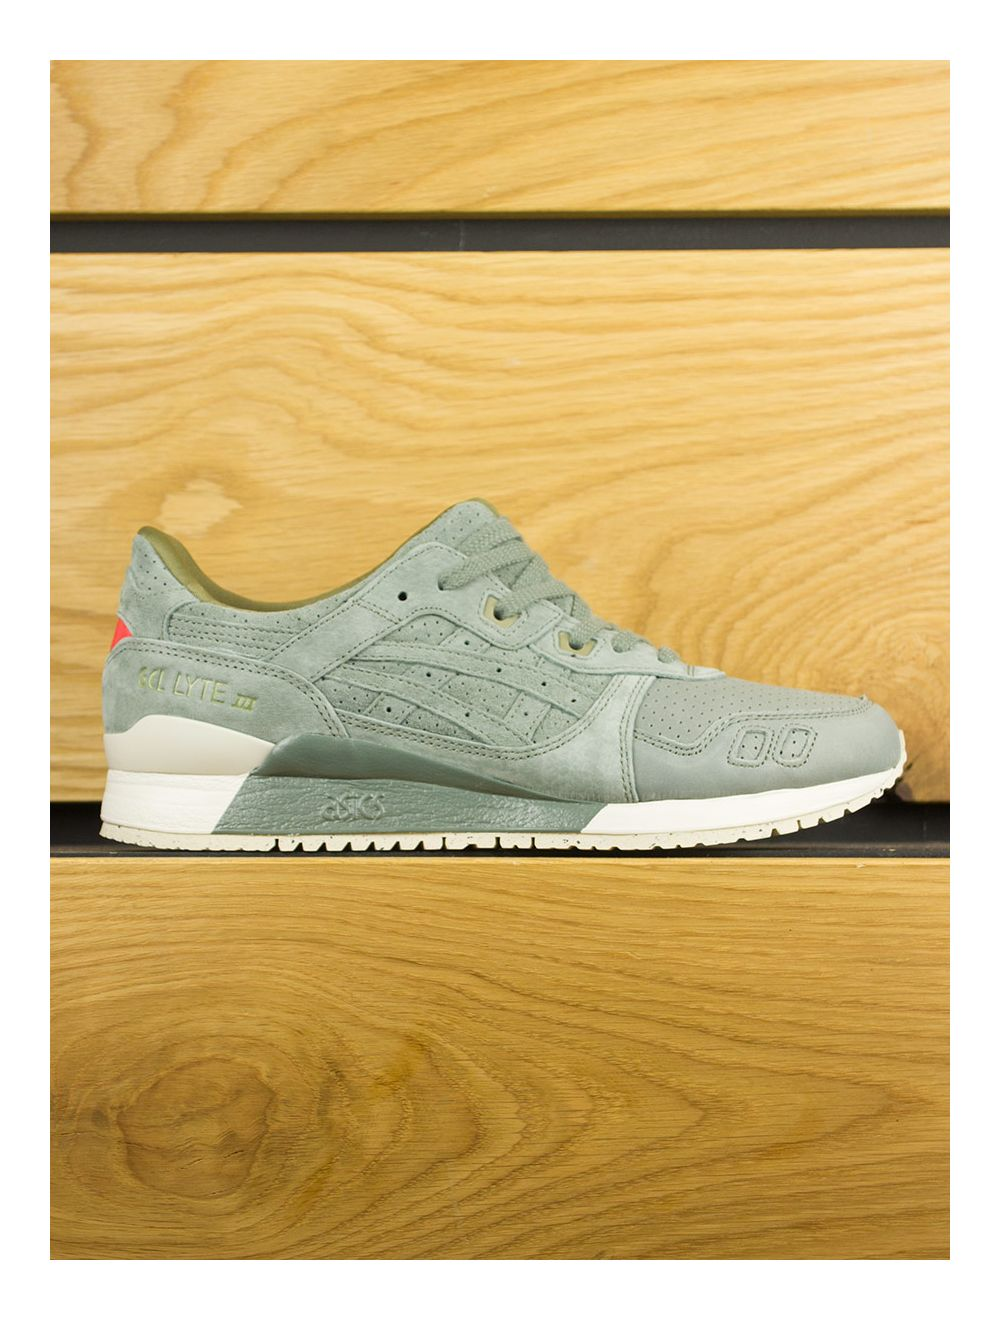 size 40 8be40 5be9b Asics Gel-Lyte III 'Perf Pack' - Agave Green